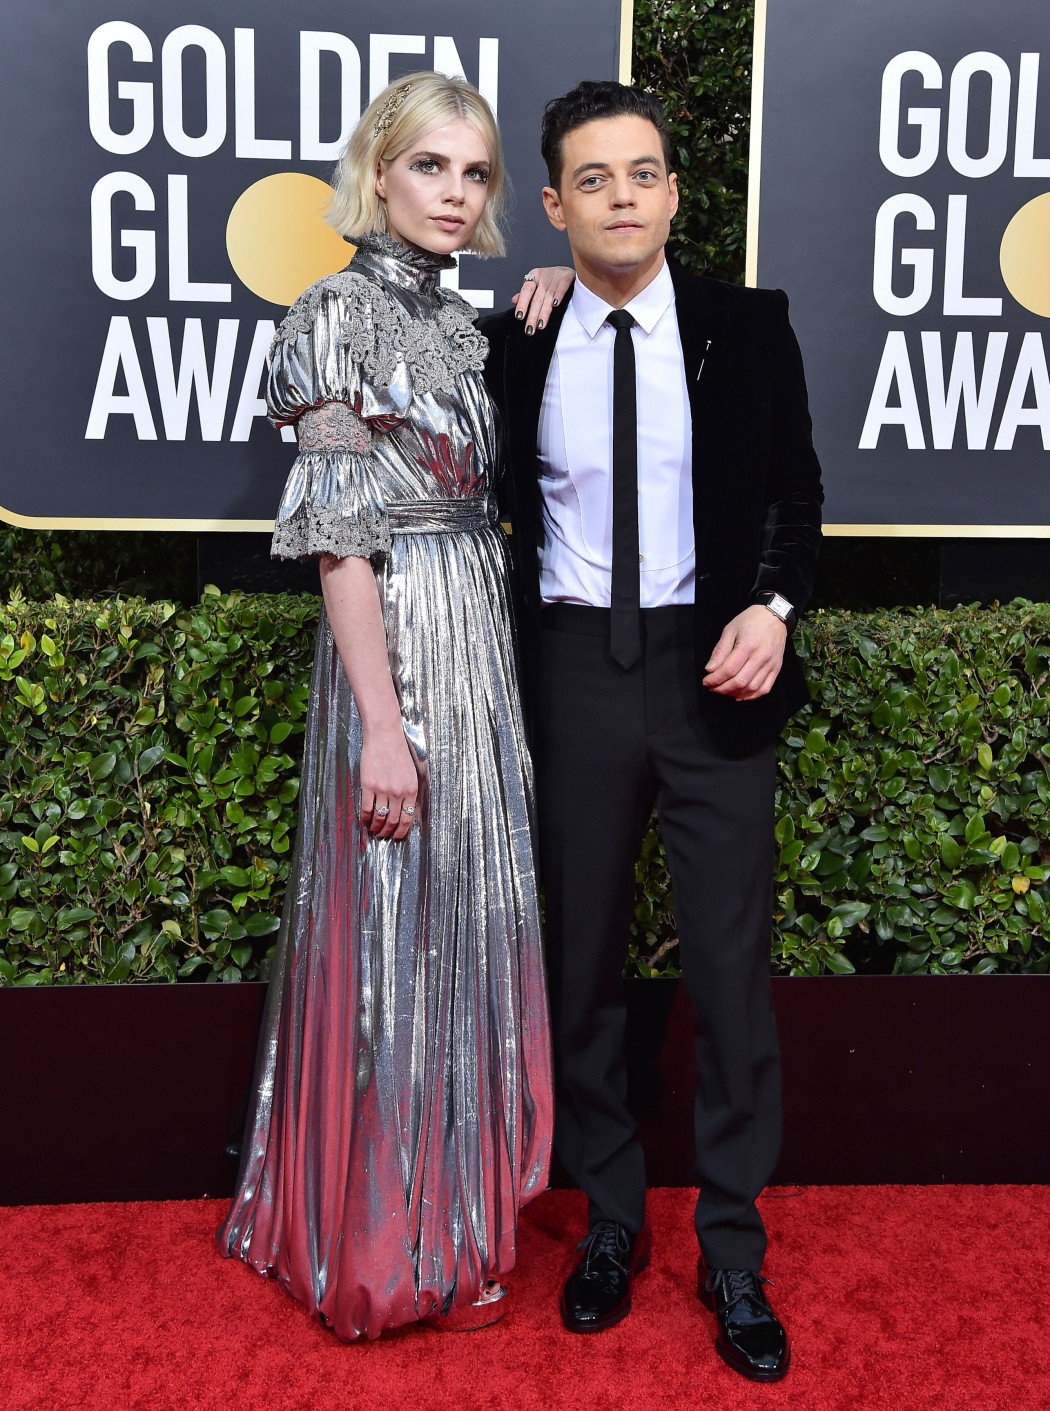 Golden Globes 2020 : les plus beaux looks du tapis rouge - 19